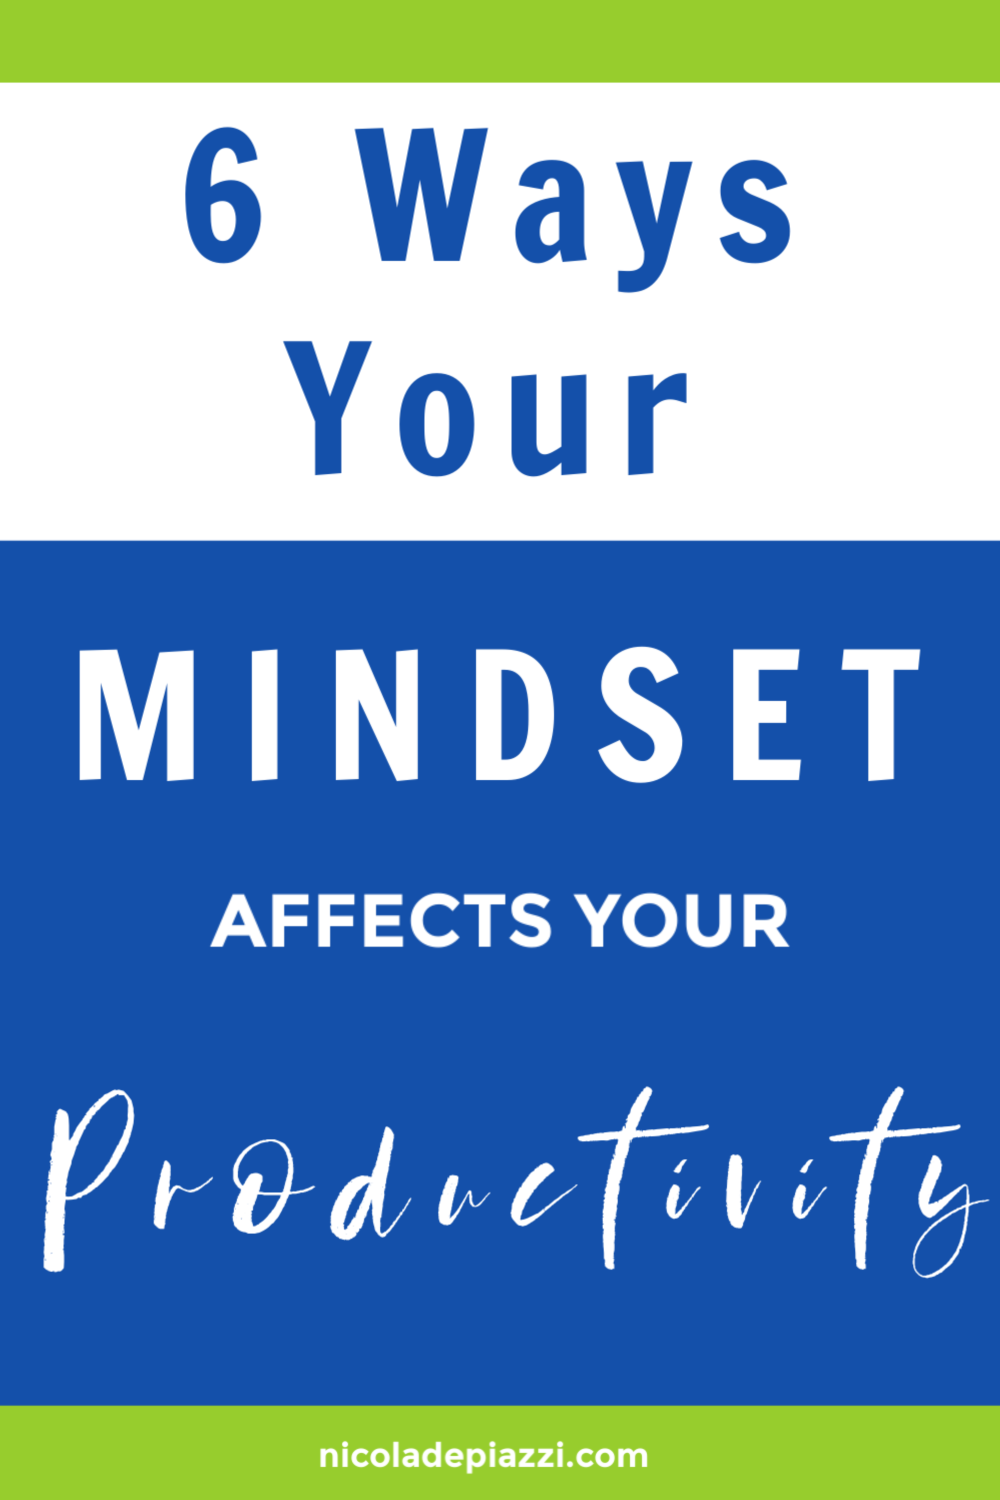 6 ways your mindset affects your productivity